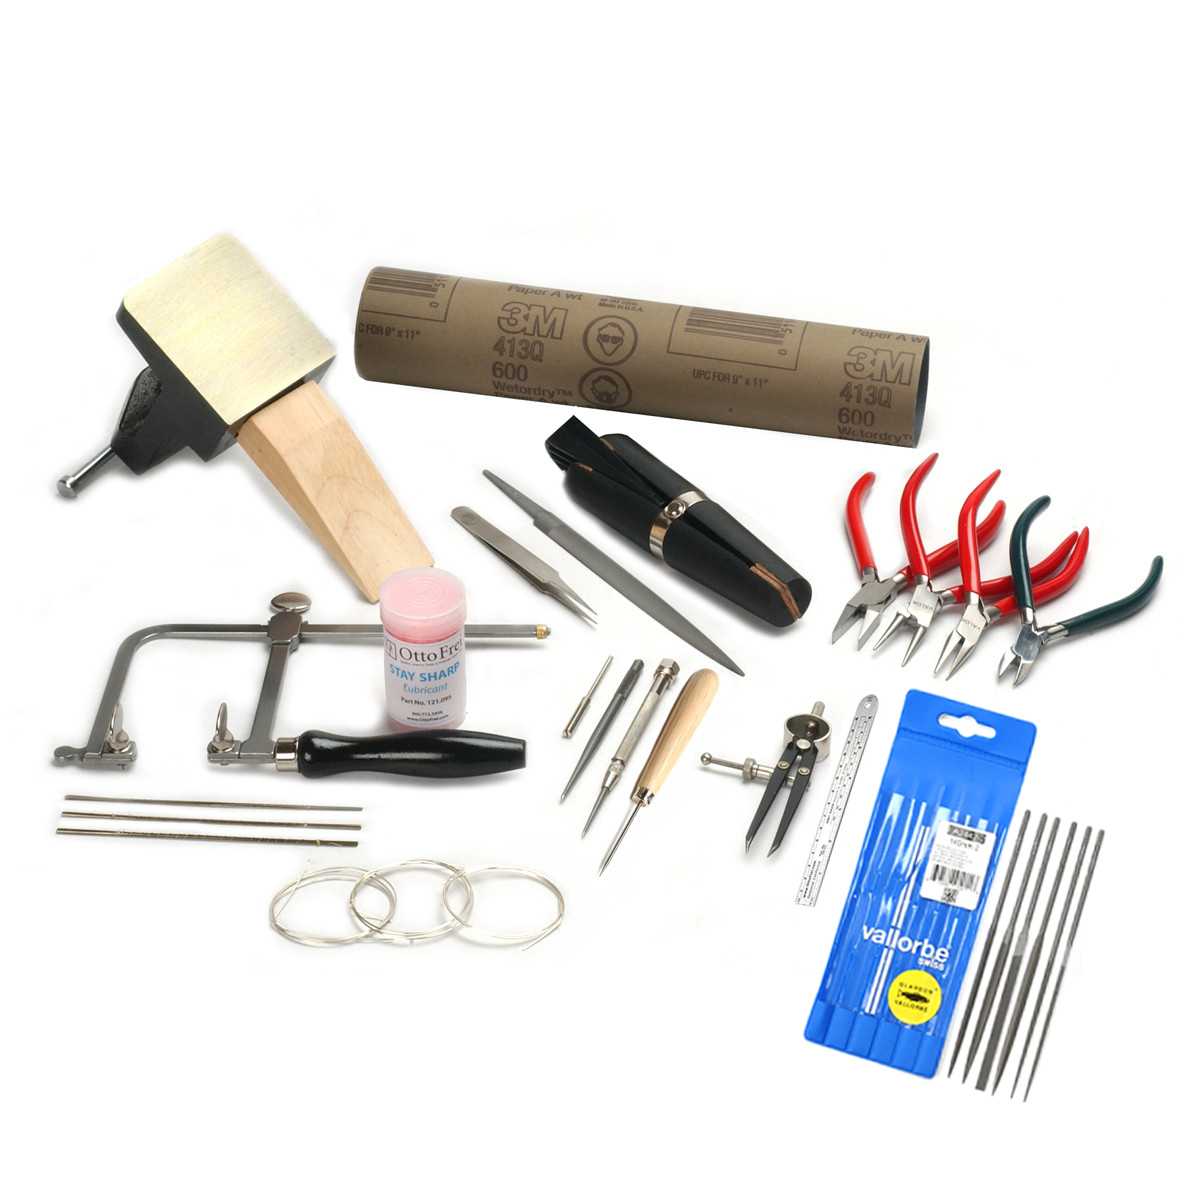 Flux Charcoal Solder Kit For Soldering Jewellery GOLD 11 Piece Silver -Torch